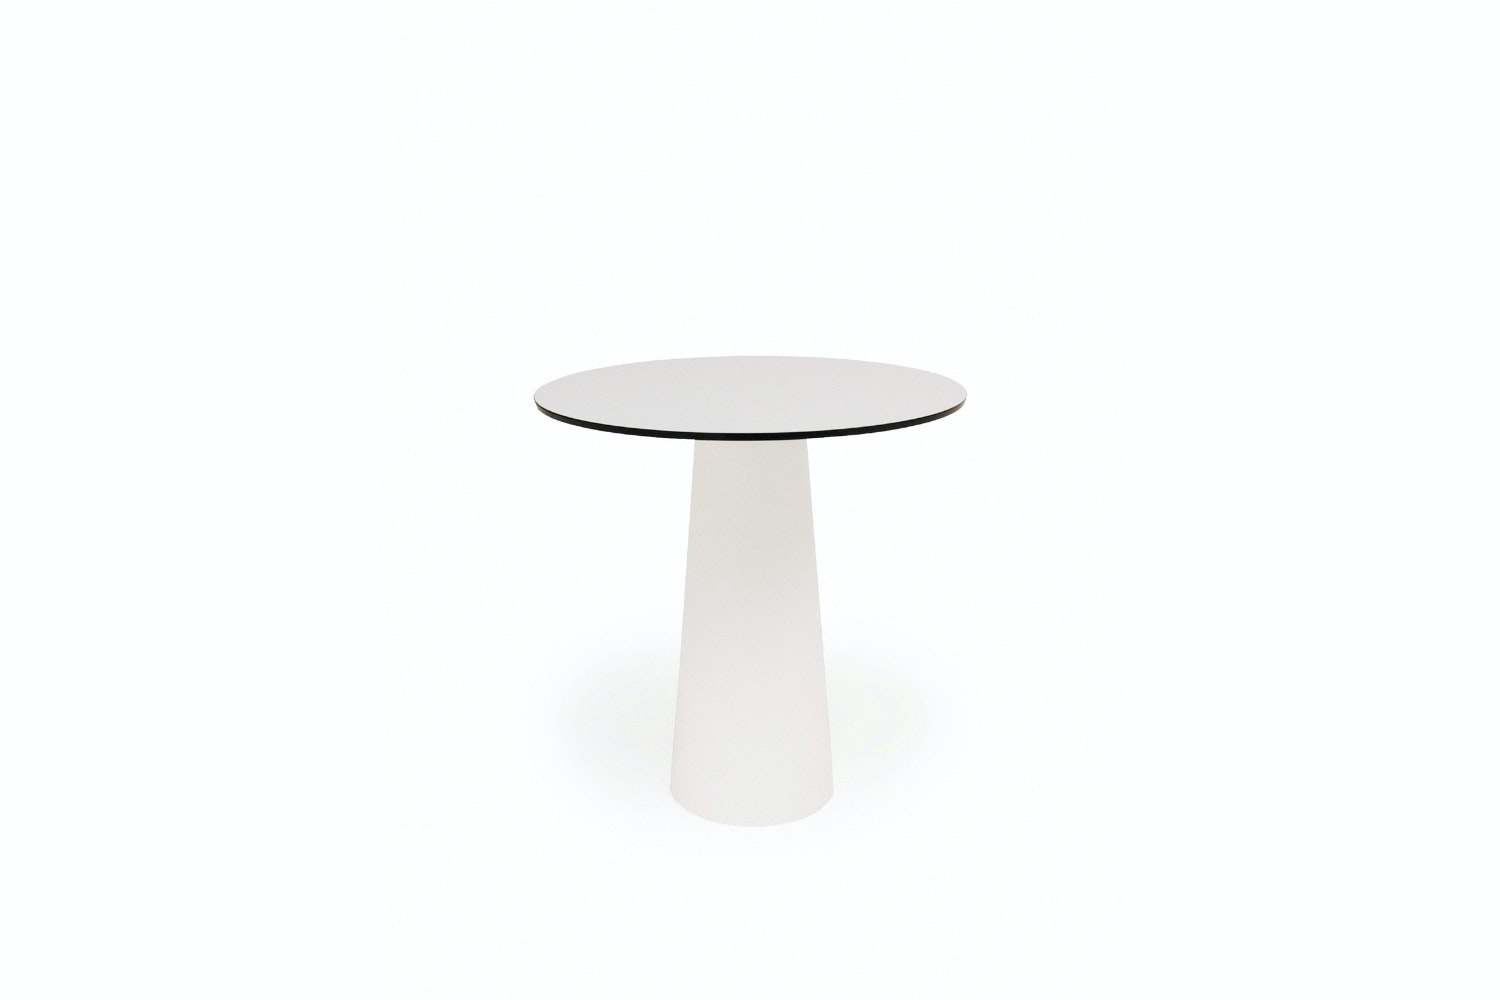 Container Table HPL Round 70cm by Marcel Wanders for Moooi